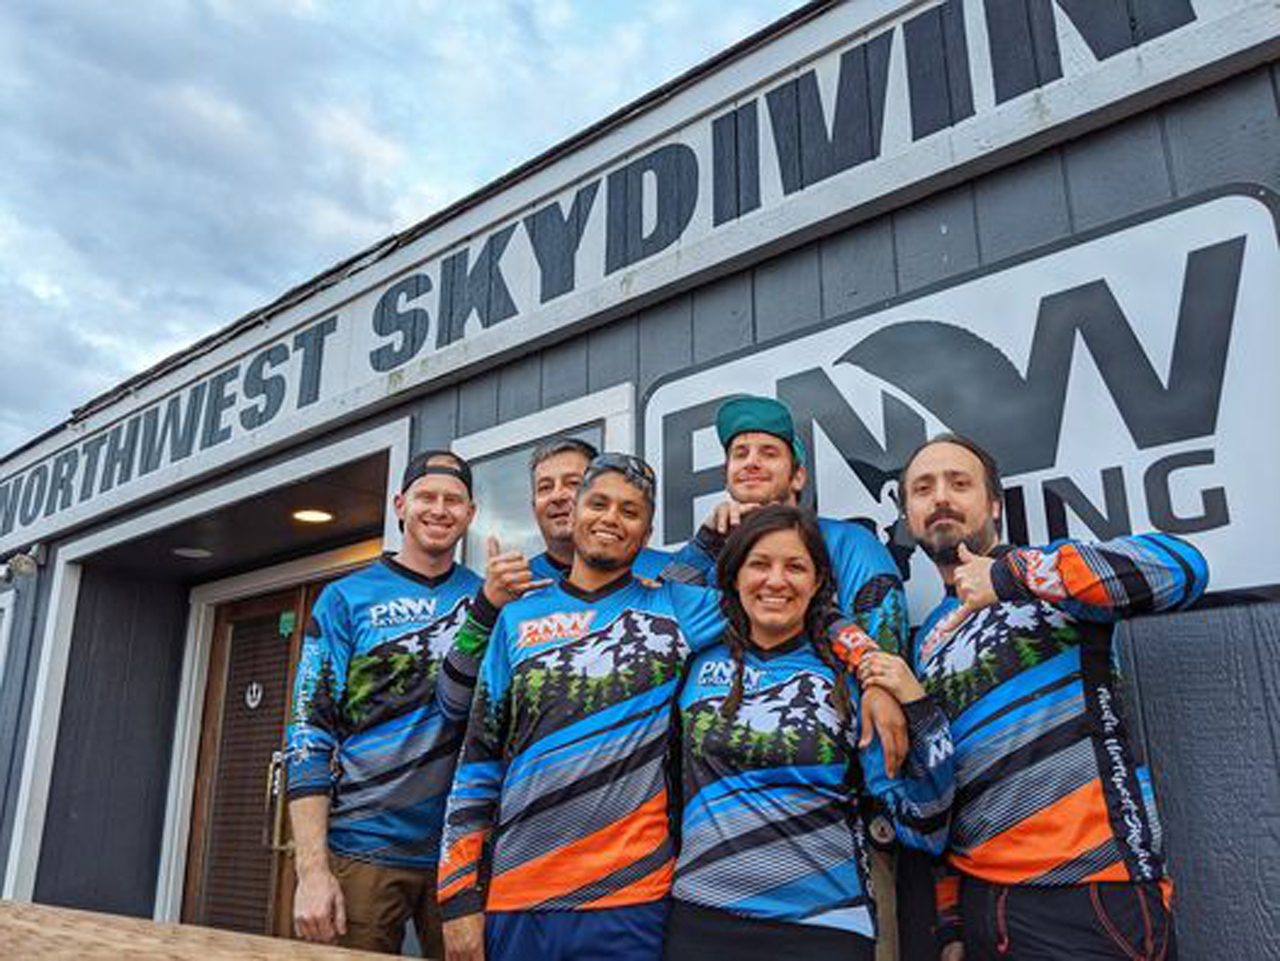 A group of licensed skydivers wearing matching shirts outside the PNW Skydiving hangar